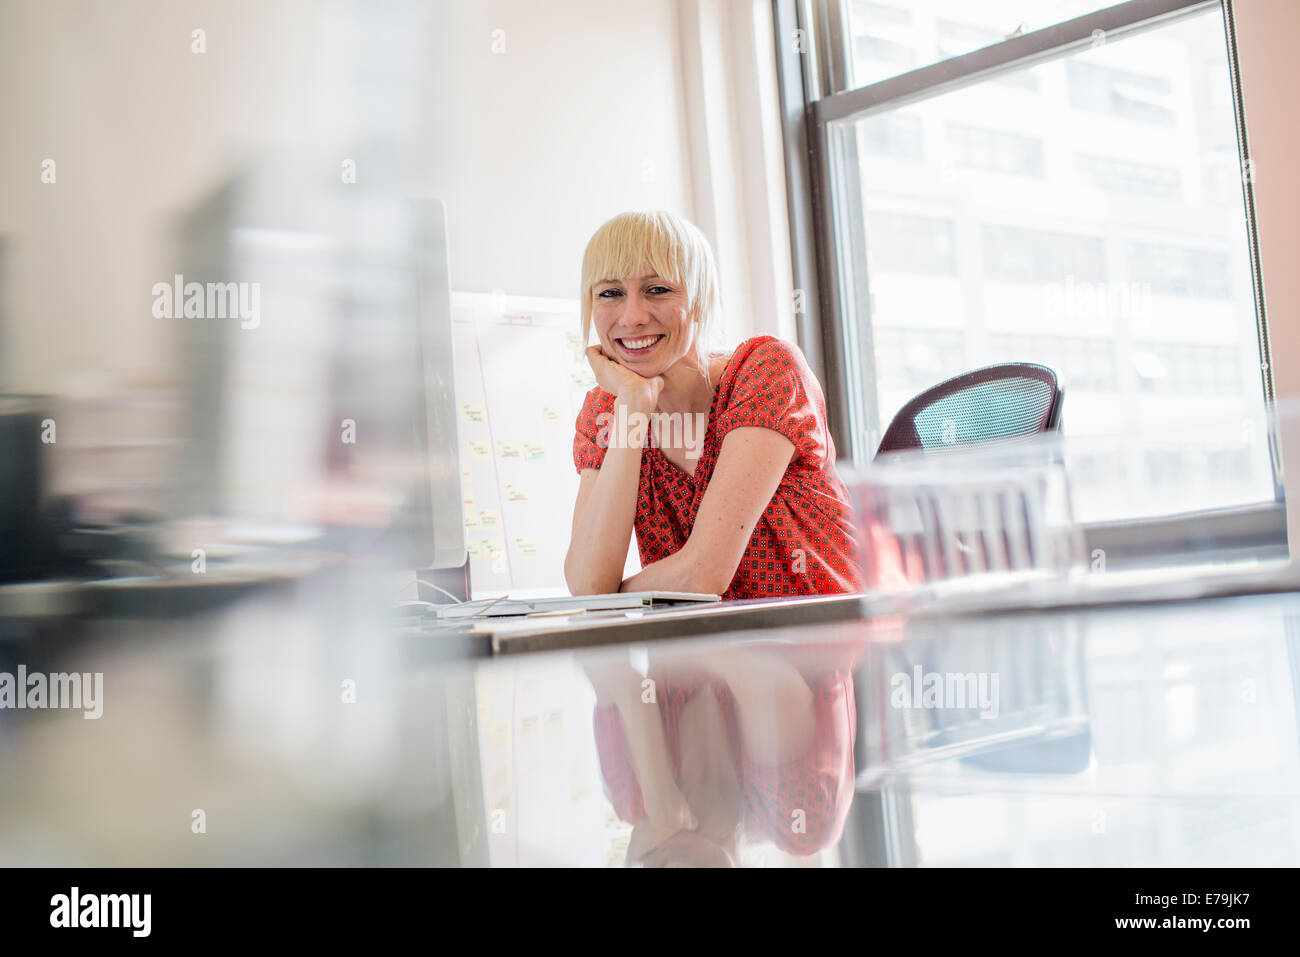 Office life. A young woman sitting at an office desk, her chin resting on her hand, looking at the camera. - Stock Image